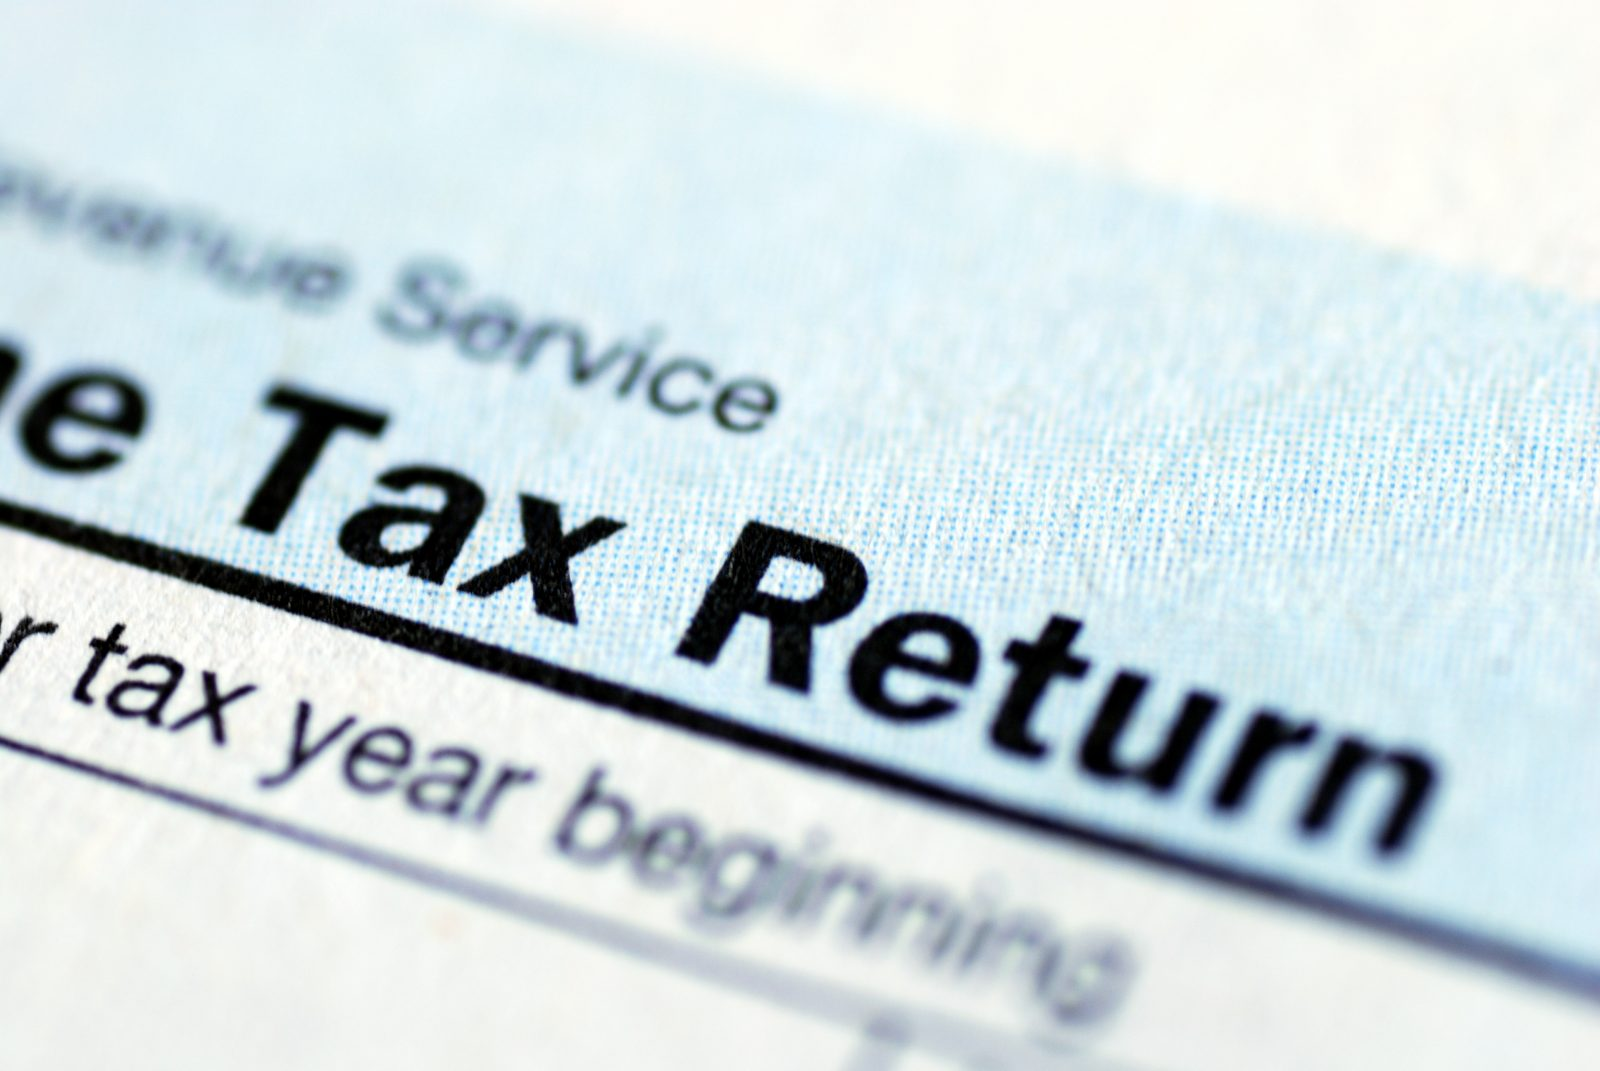 unfiled tax returns